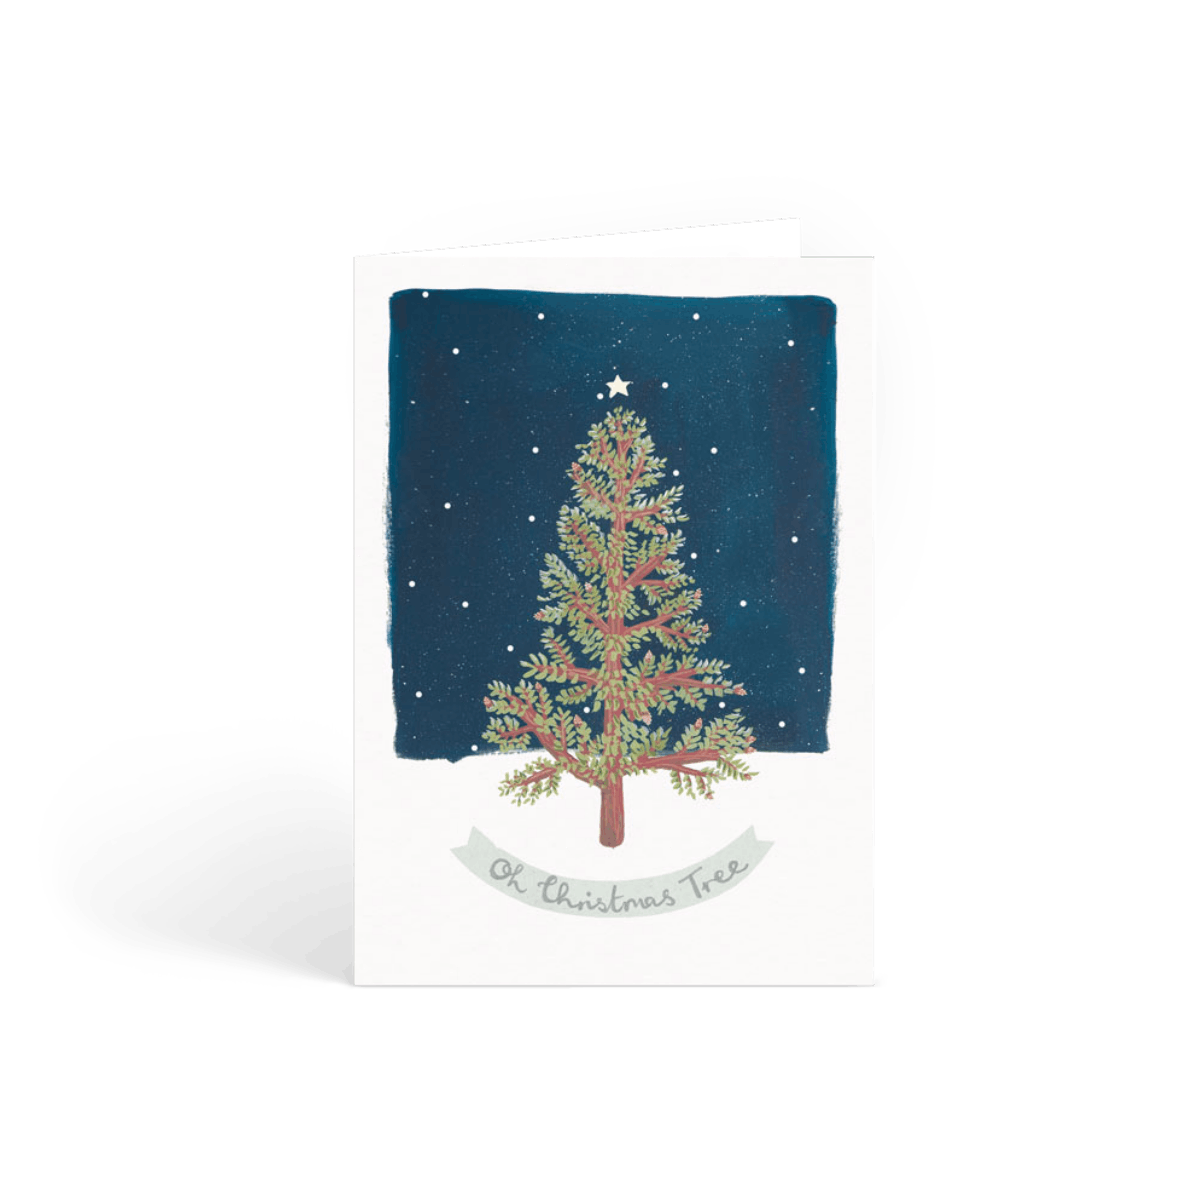 Https%3a%2f%2fwww.papier.com%2fproduct image%2f7977%2f2%2foh christmas tree 1973 front 1472563463.png?ixlib=rb 1.1